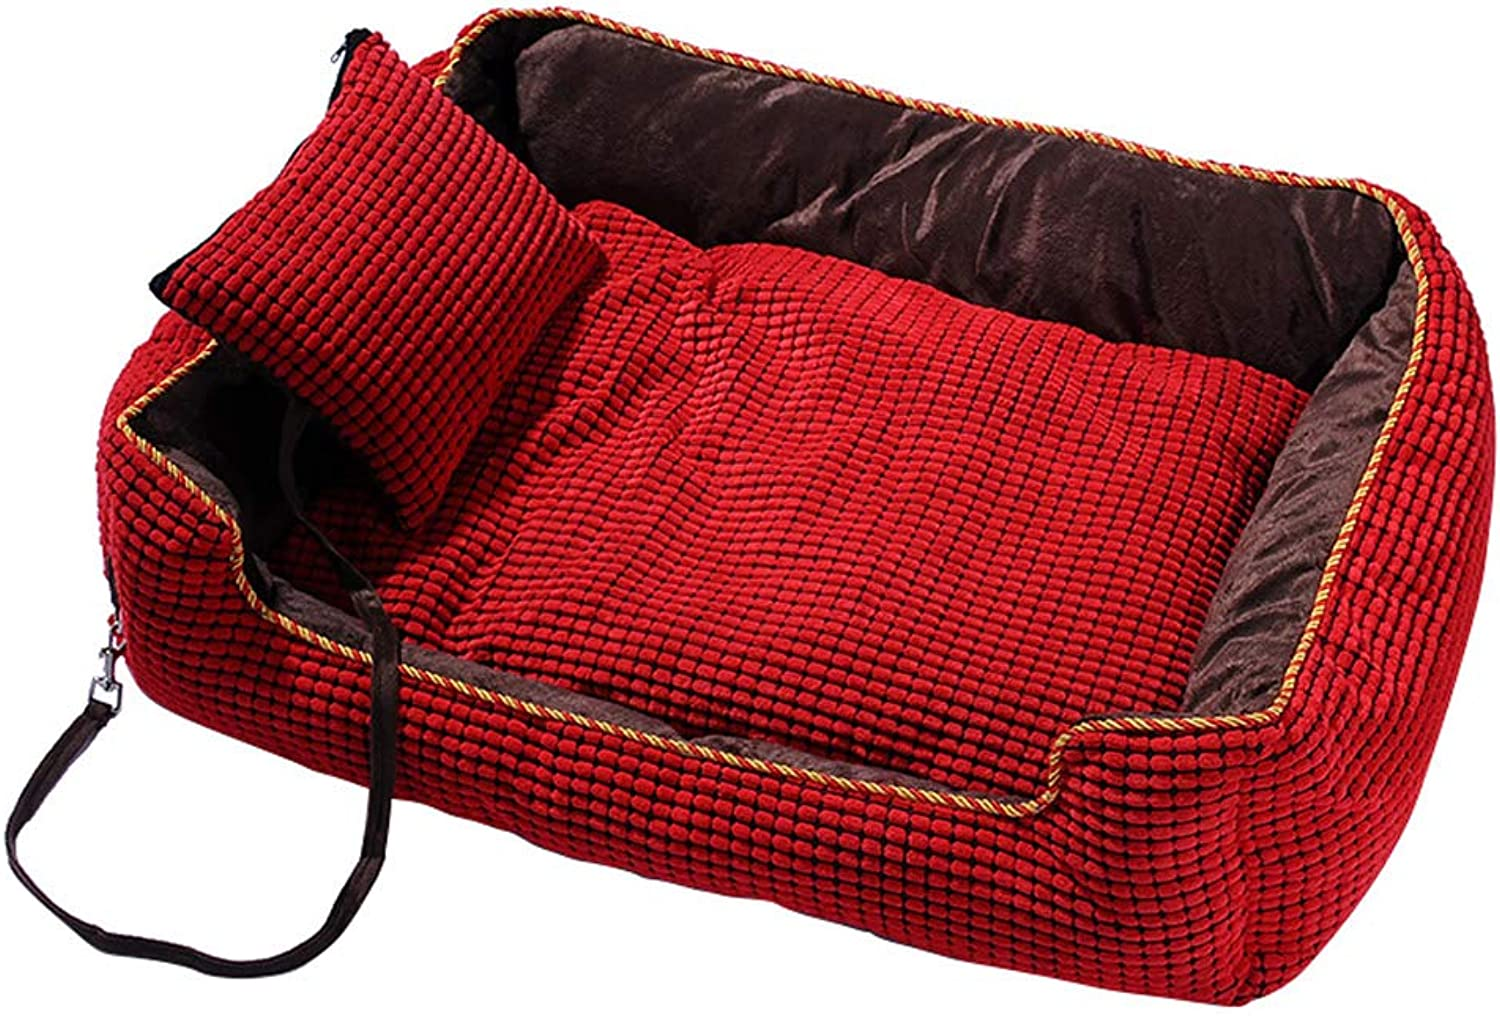 HQSB Pet Bed Deluxe Soft Washable Warm Dog Basket Bed Cushion with PP cotton Lining for Cats & Dogs (color   RED, Size   Xl)